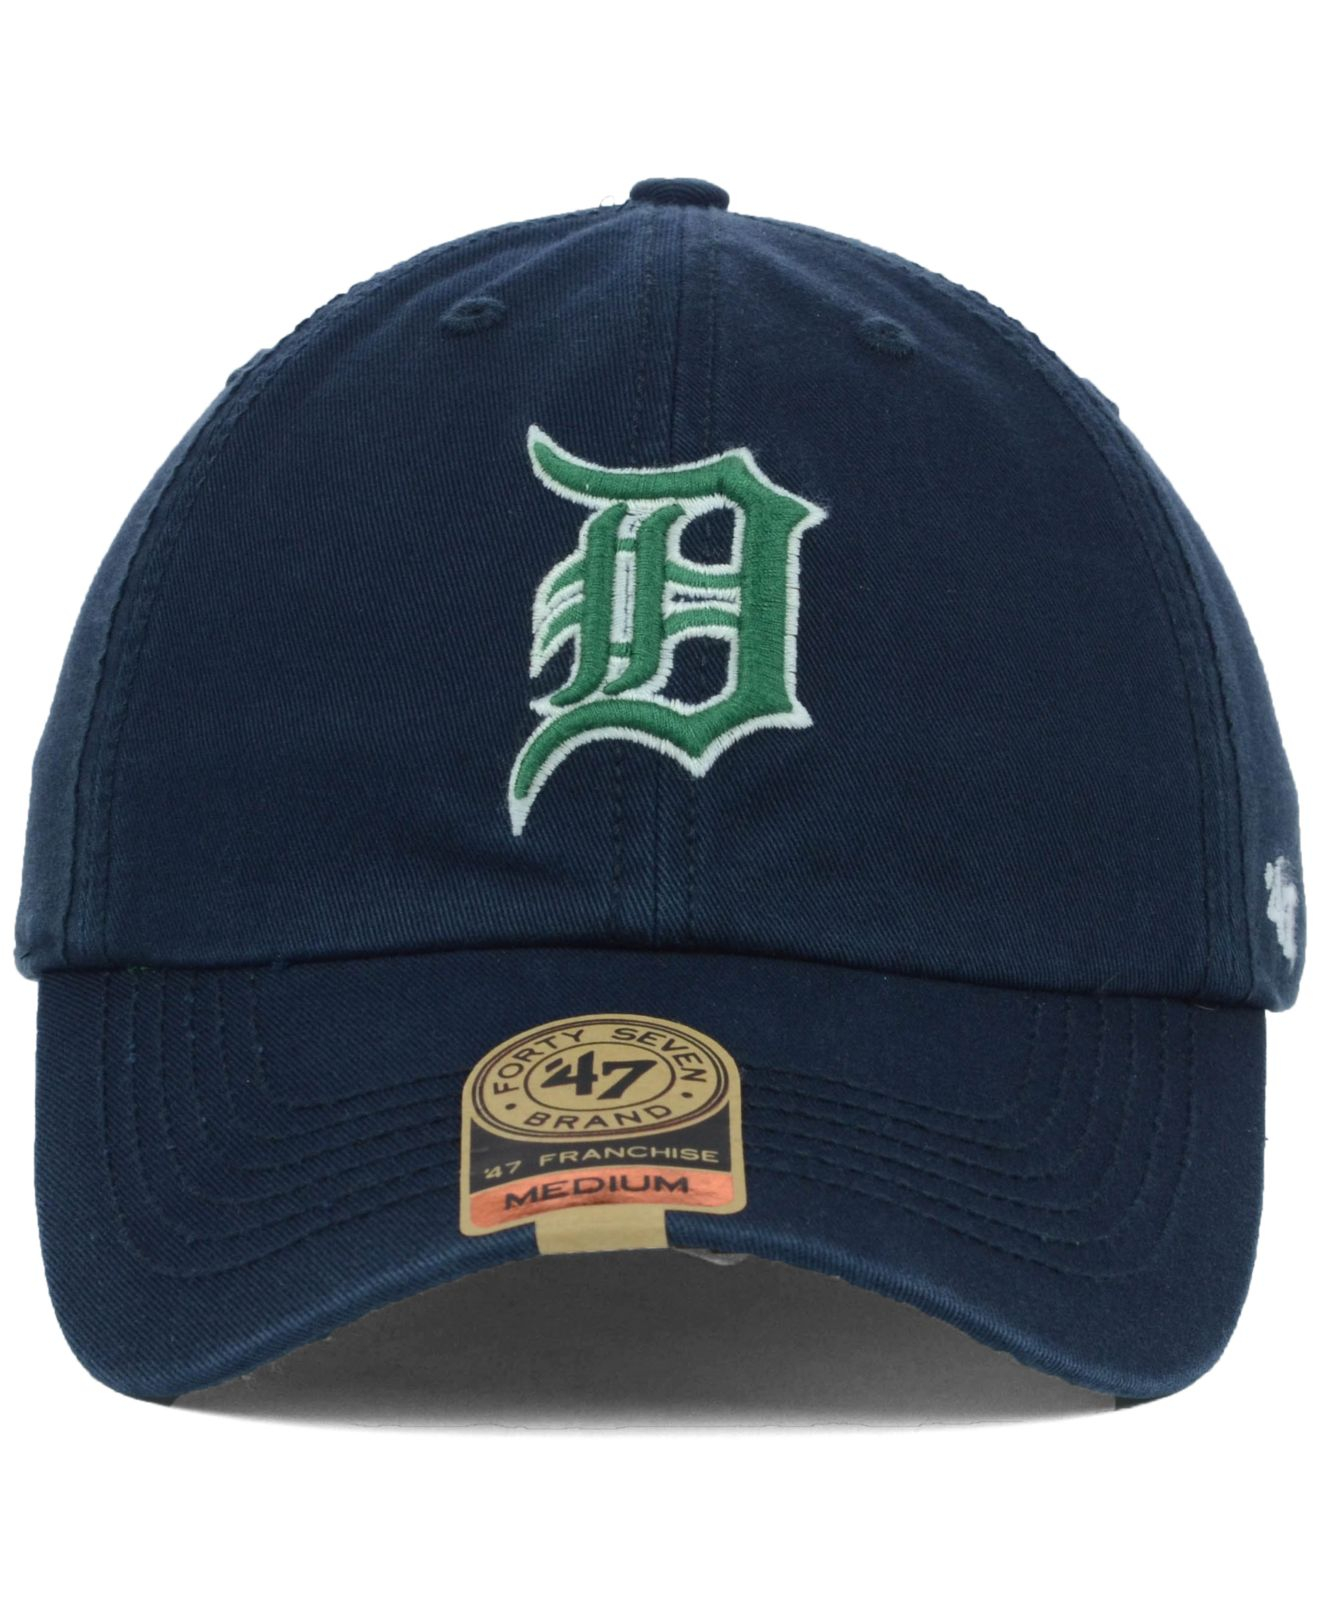 reputable site cfd17 e7bba ... usa lyst 47 brand detroit tigers mlb dublin cap in blue for men a705d  578ab